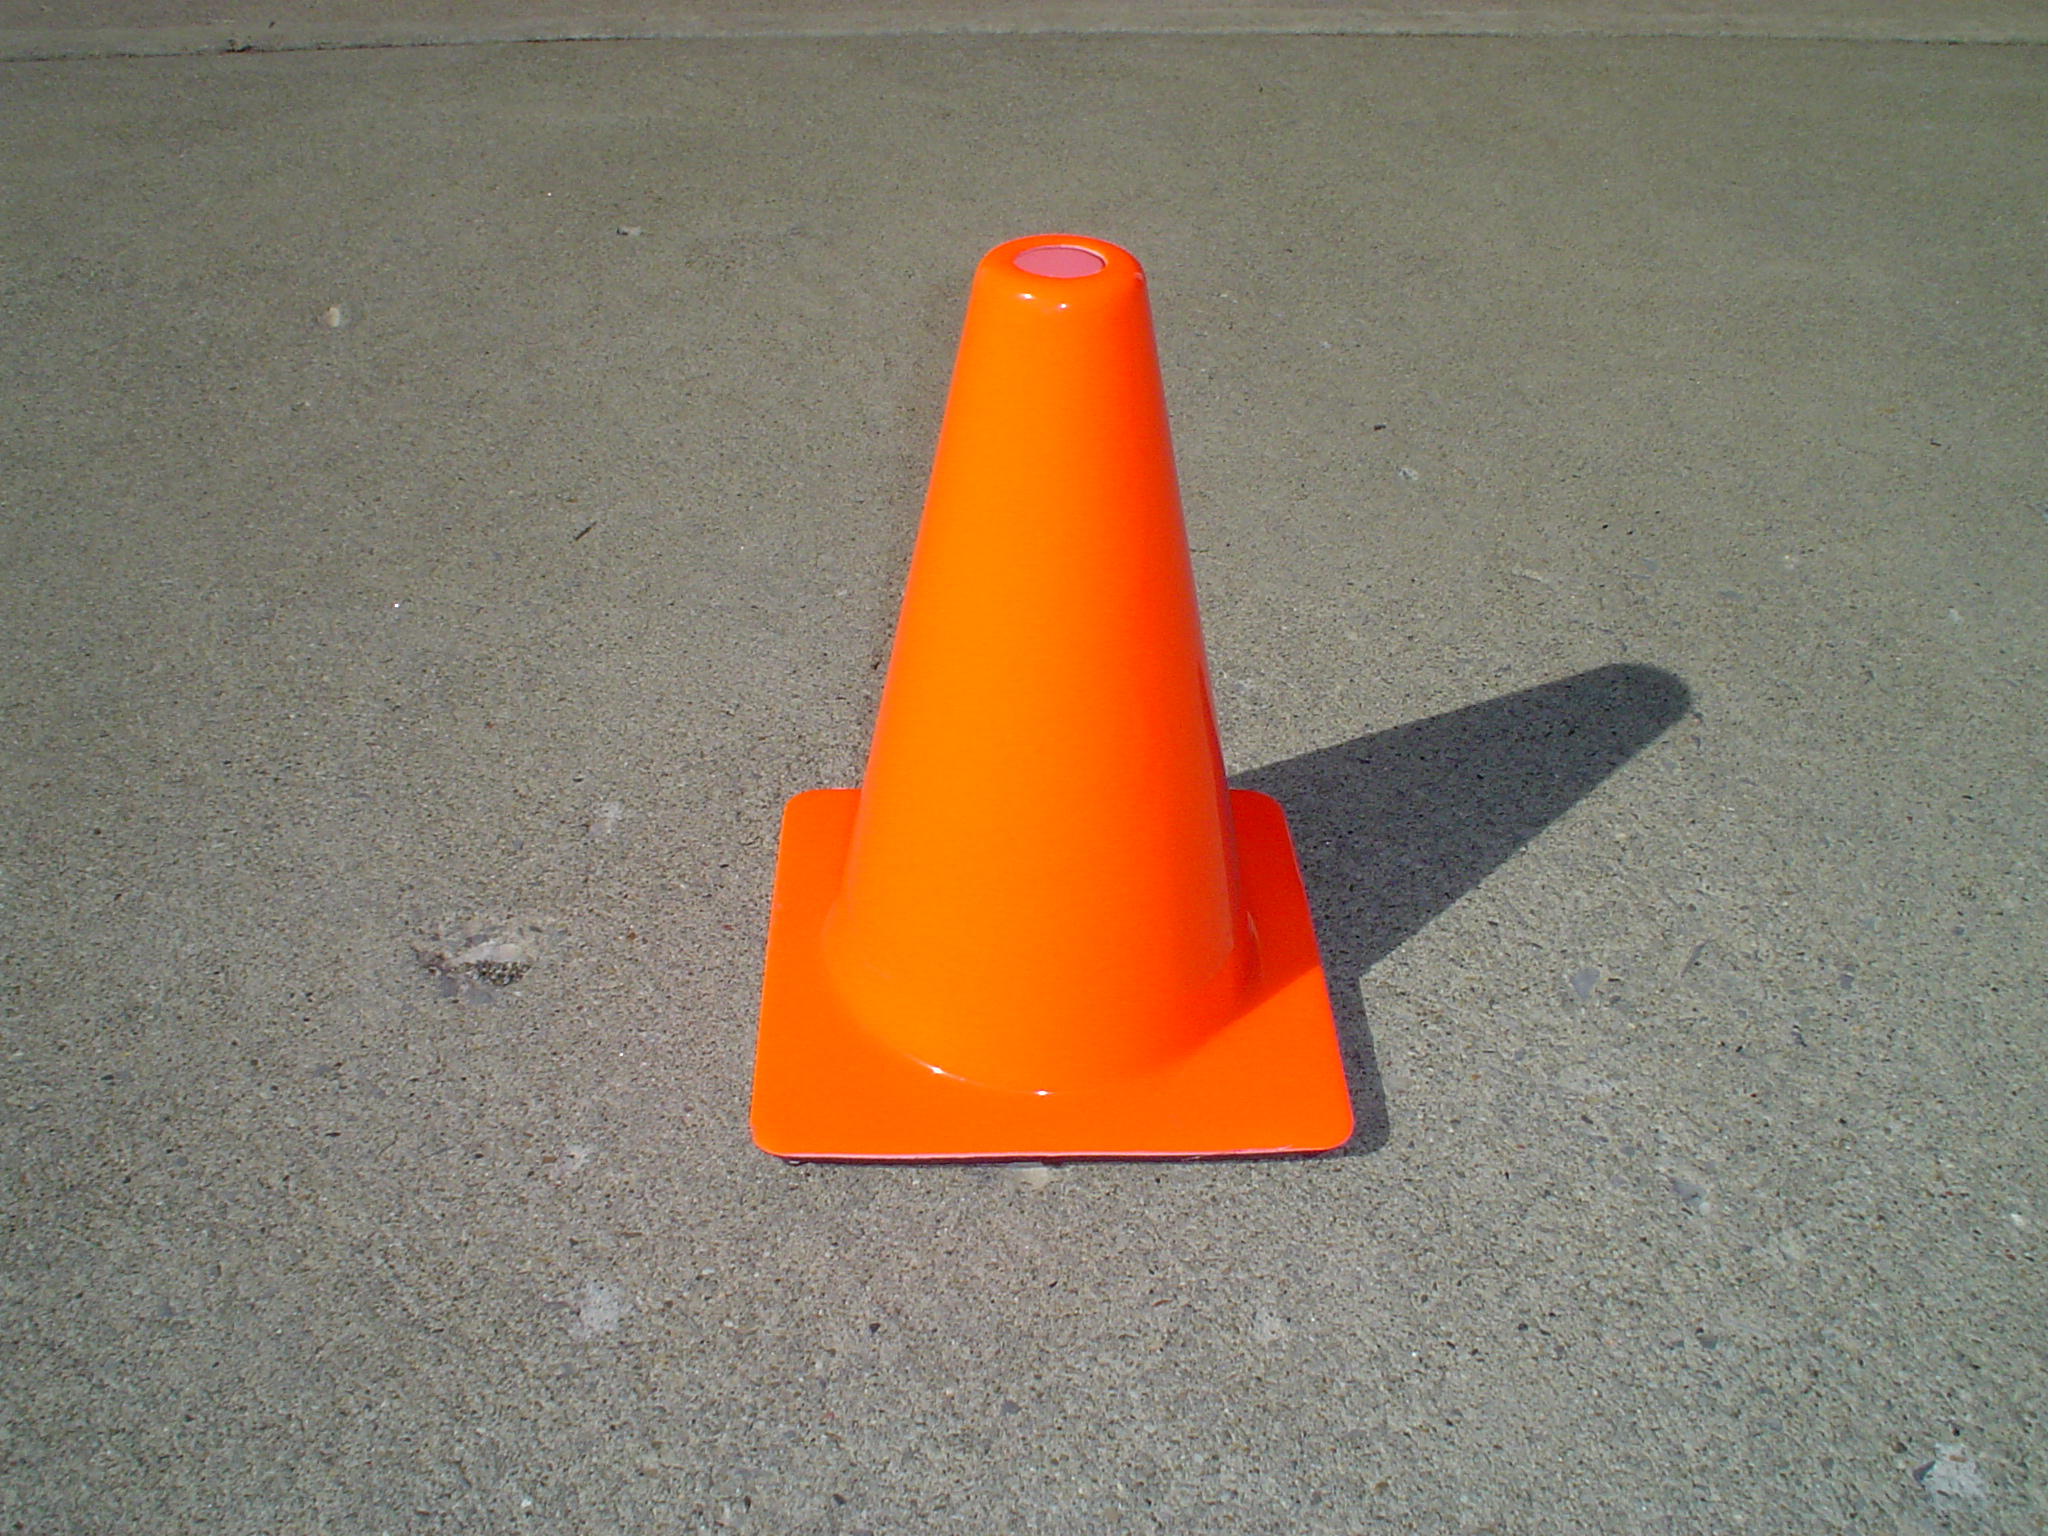 Dating a traffic cone